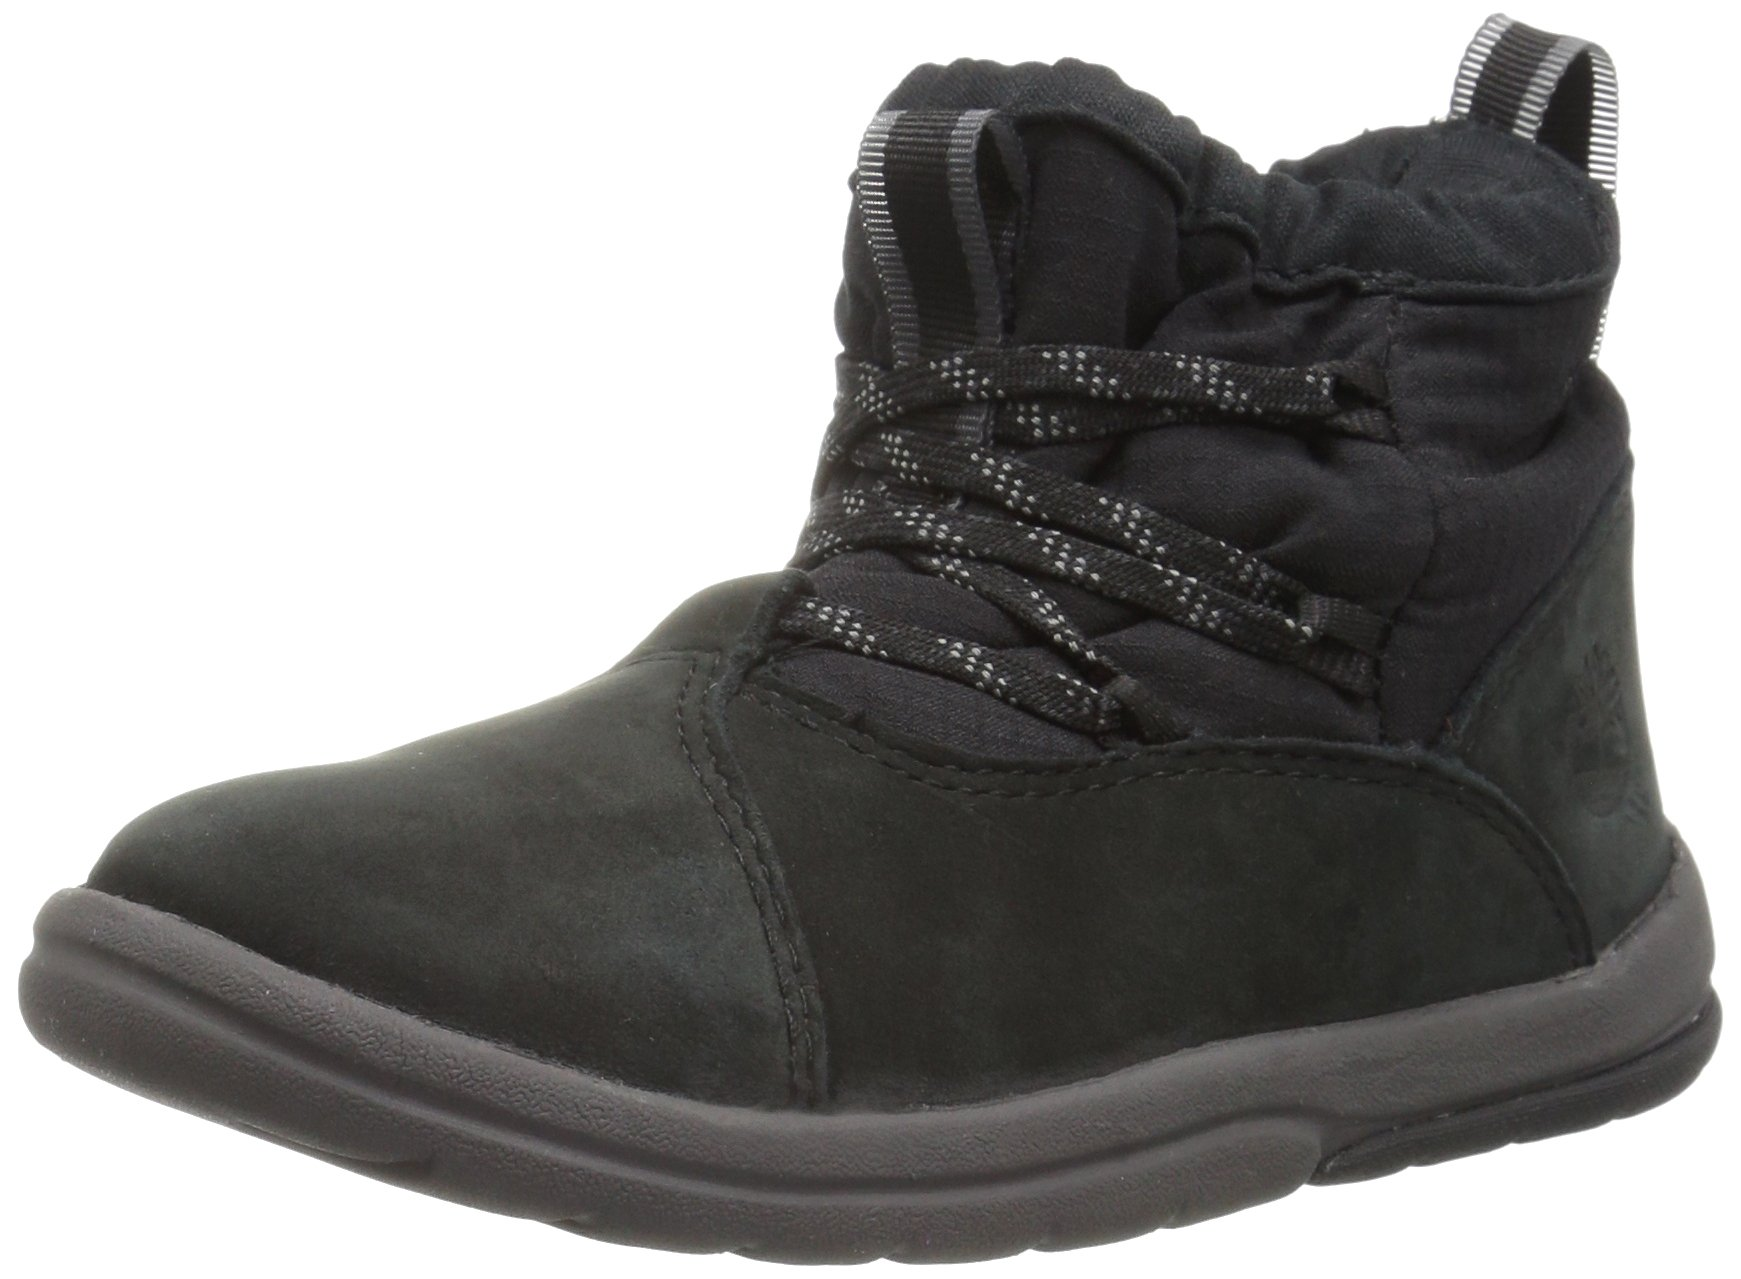 Timberland Unisex Toddle Tracks Warm Fabric Leather Bootie Snow Boot Black Nubuck 12 M US Little Kid